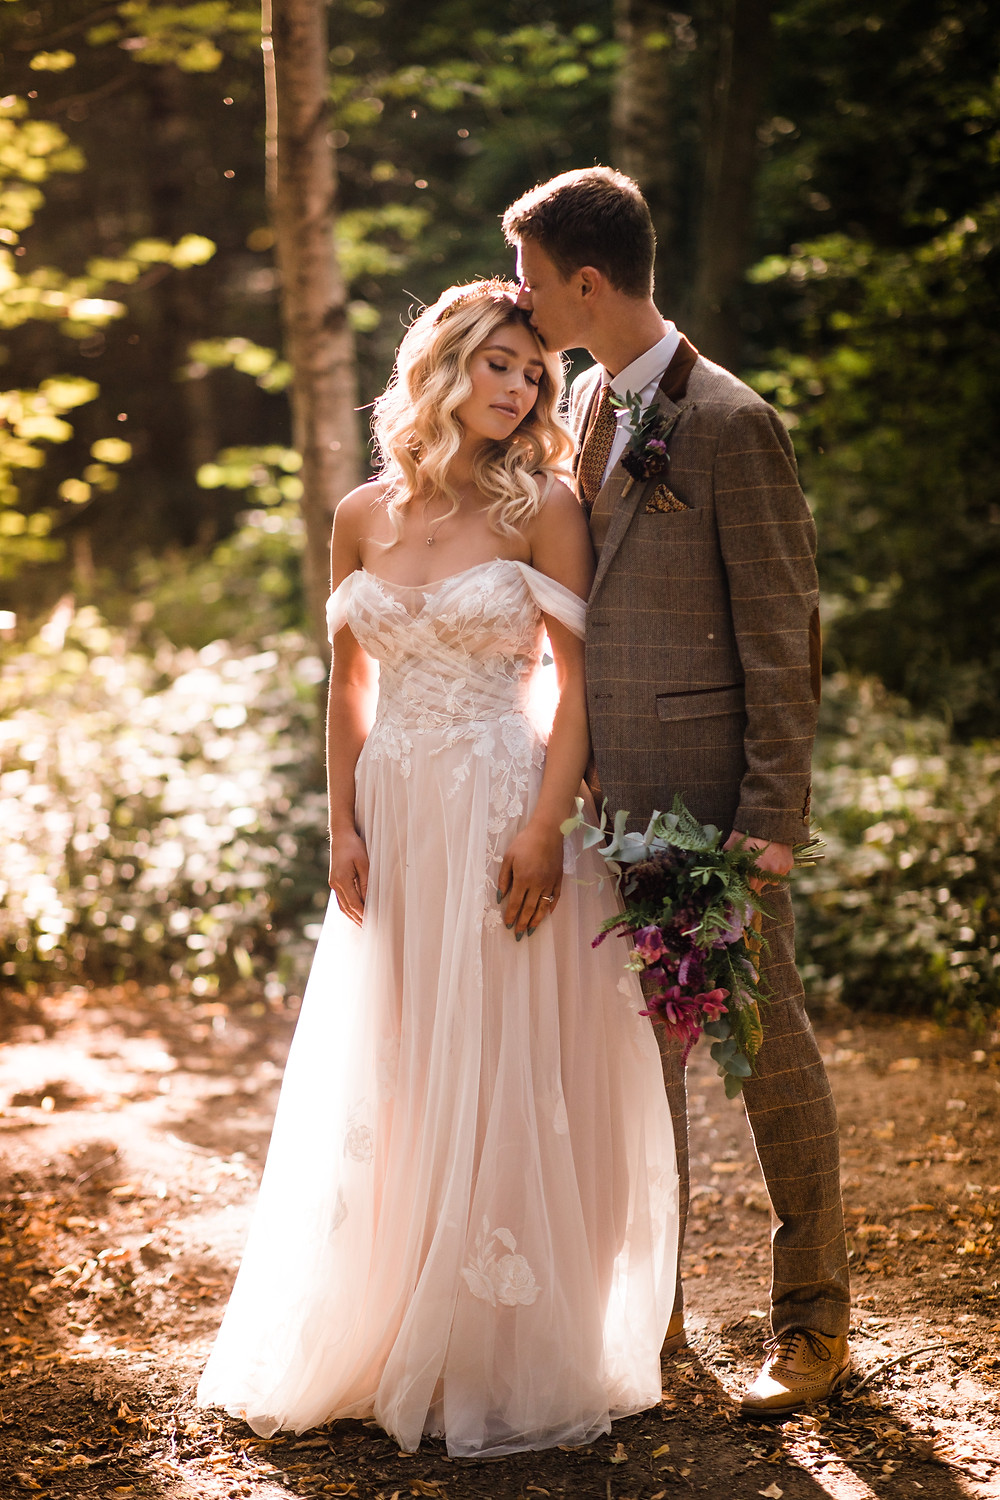 Bride and groon. Bride wears a flowing bohemian lace and tulle gown. Groom wears a tweed suit with beautiful button hole